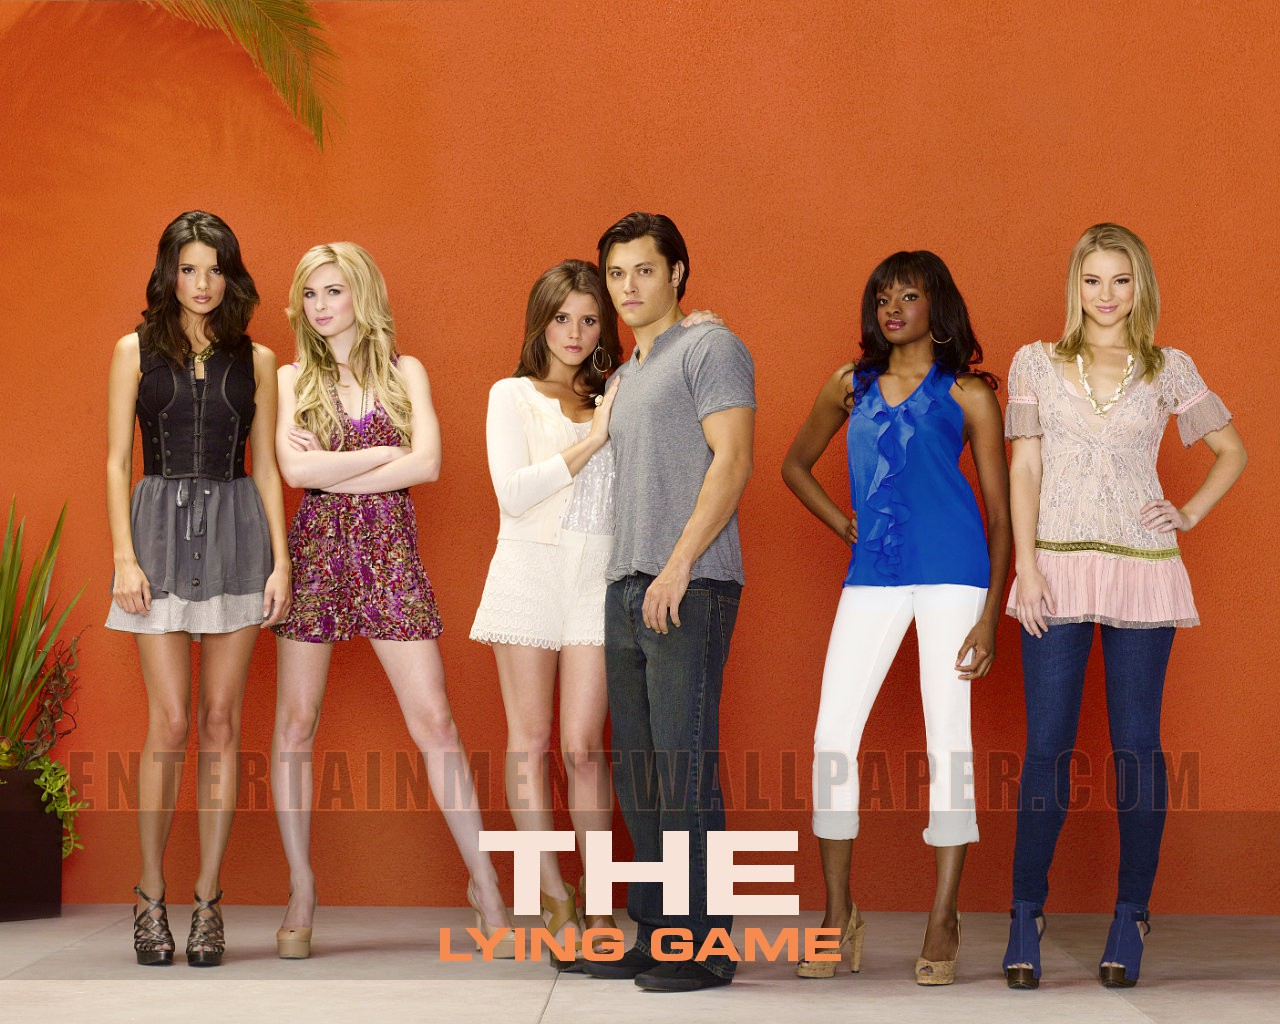 tv-the-lying-game04.jpg (1280×1024)